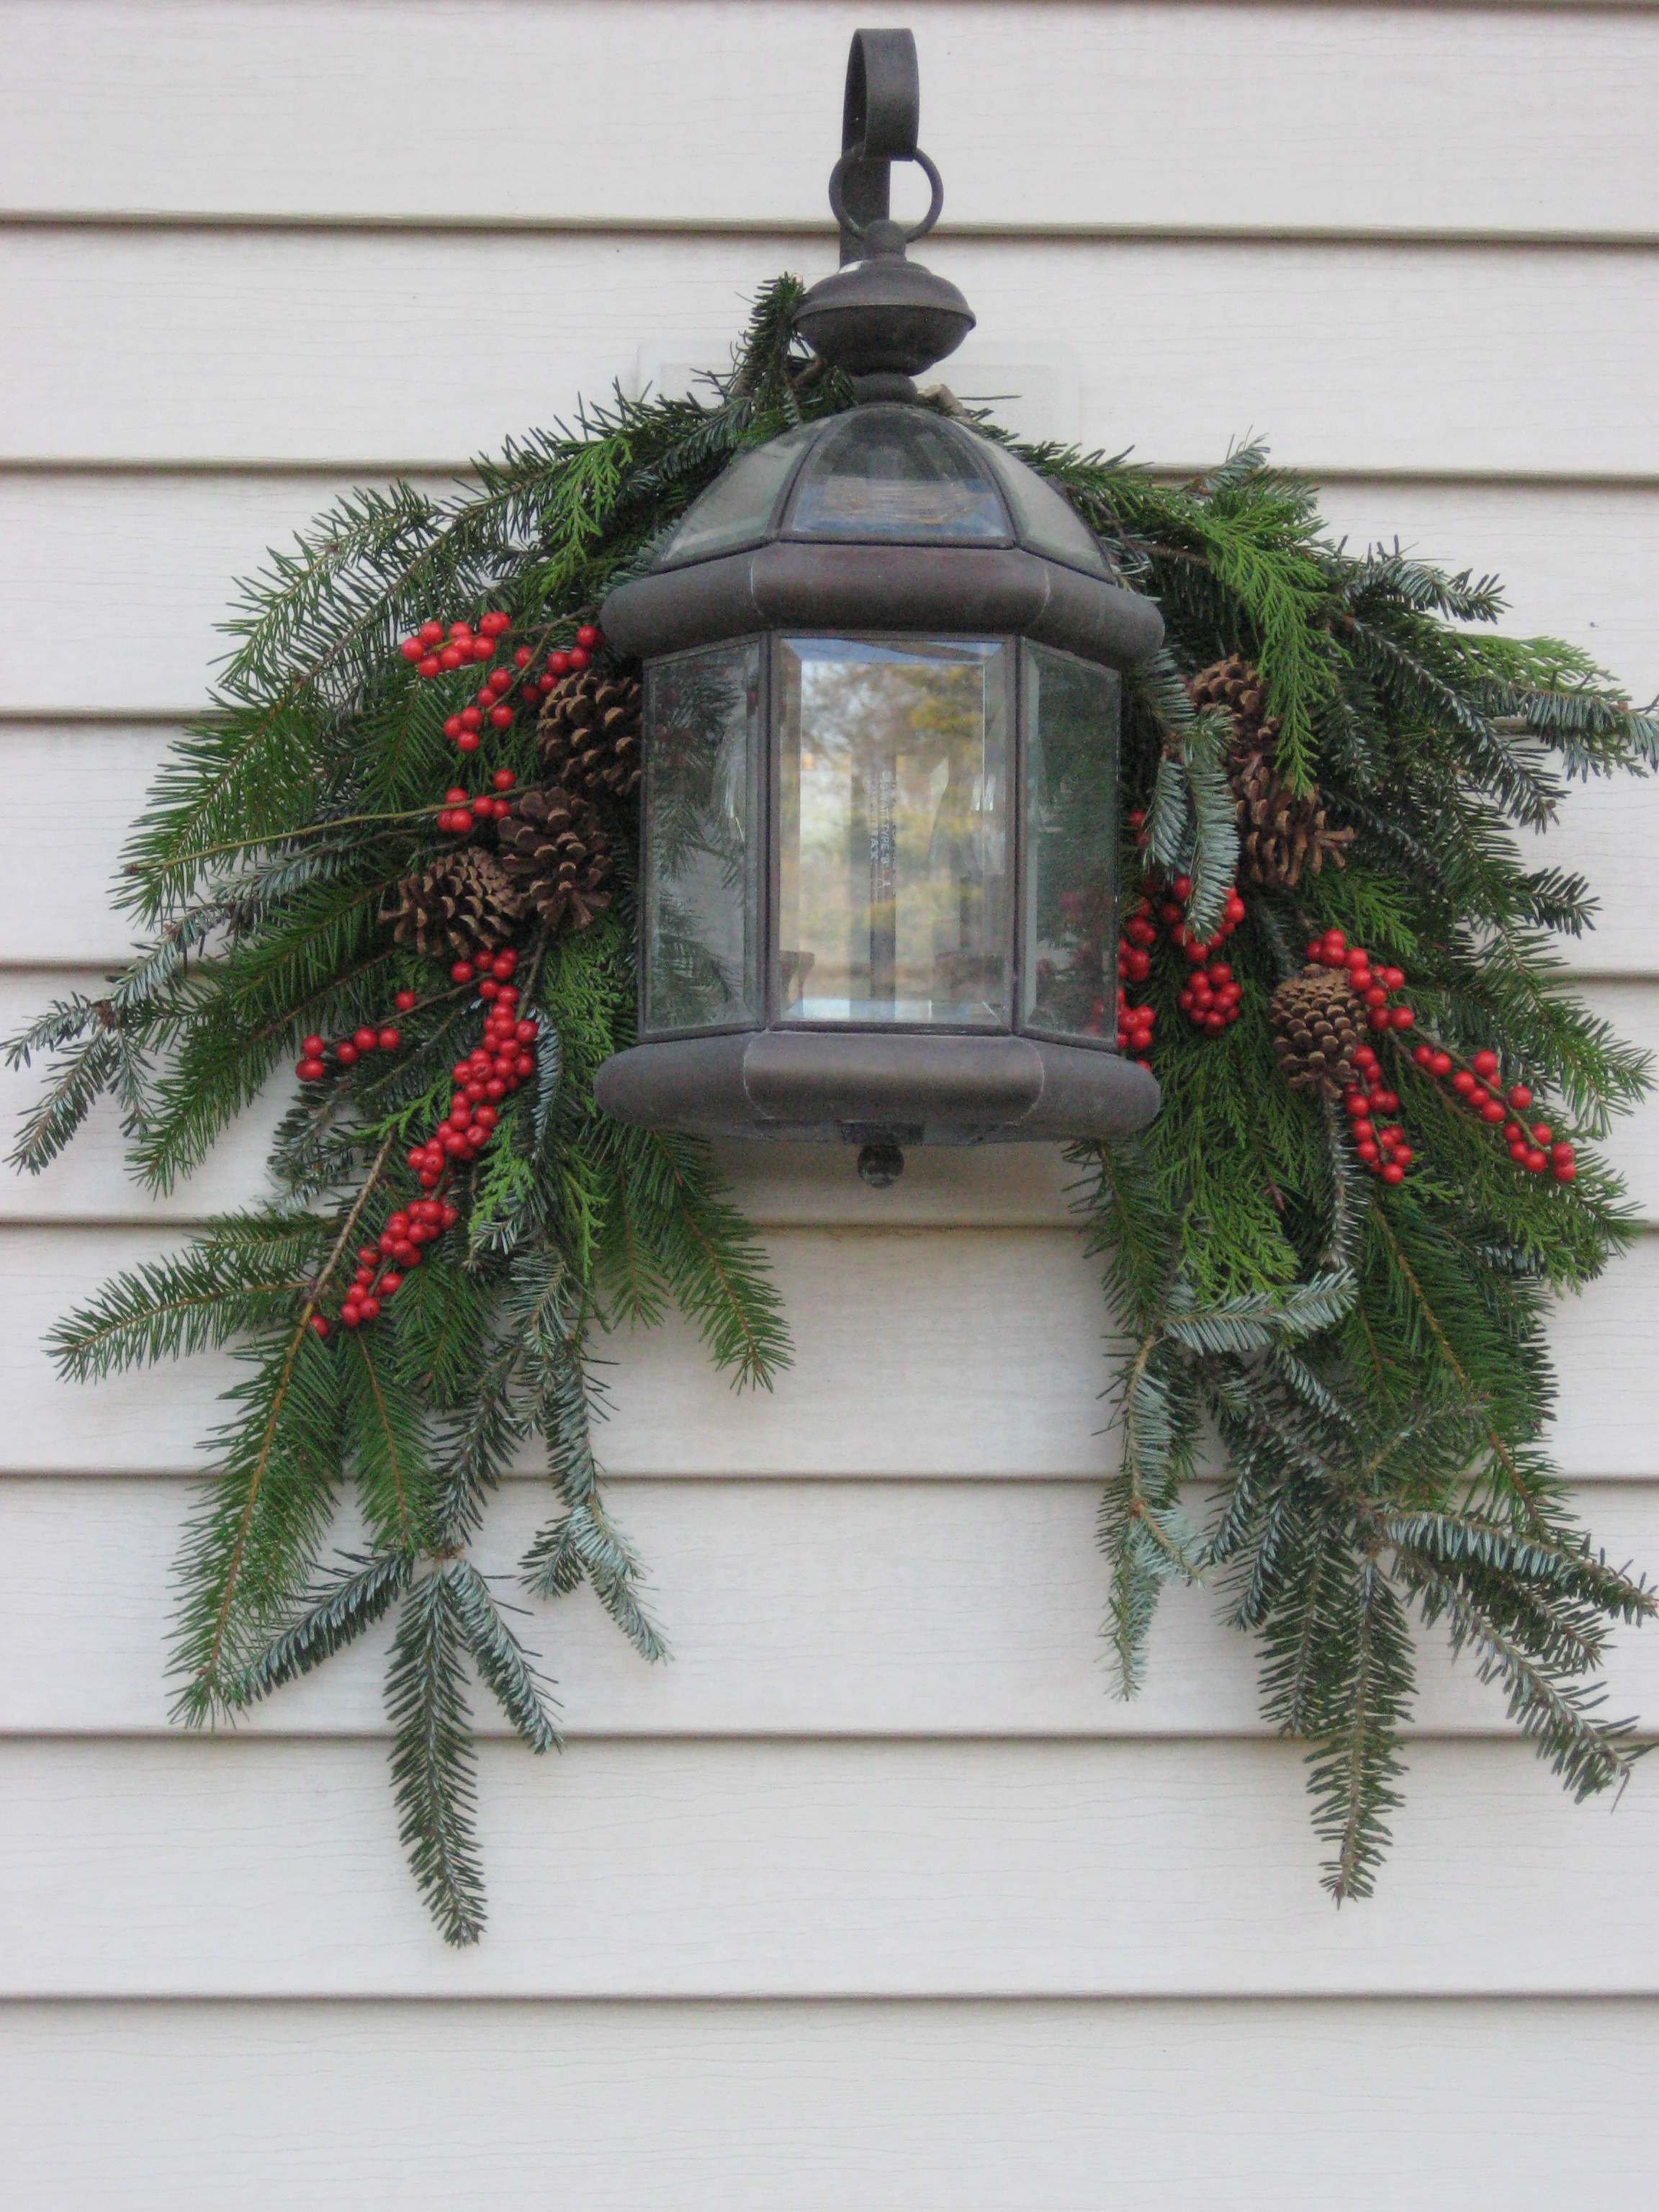 install indooroutdoor lighting photo of swag and lantern - Christmas Swag Decorations